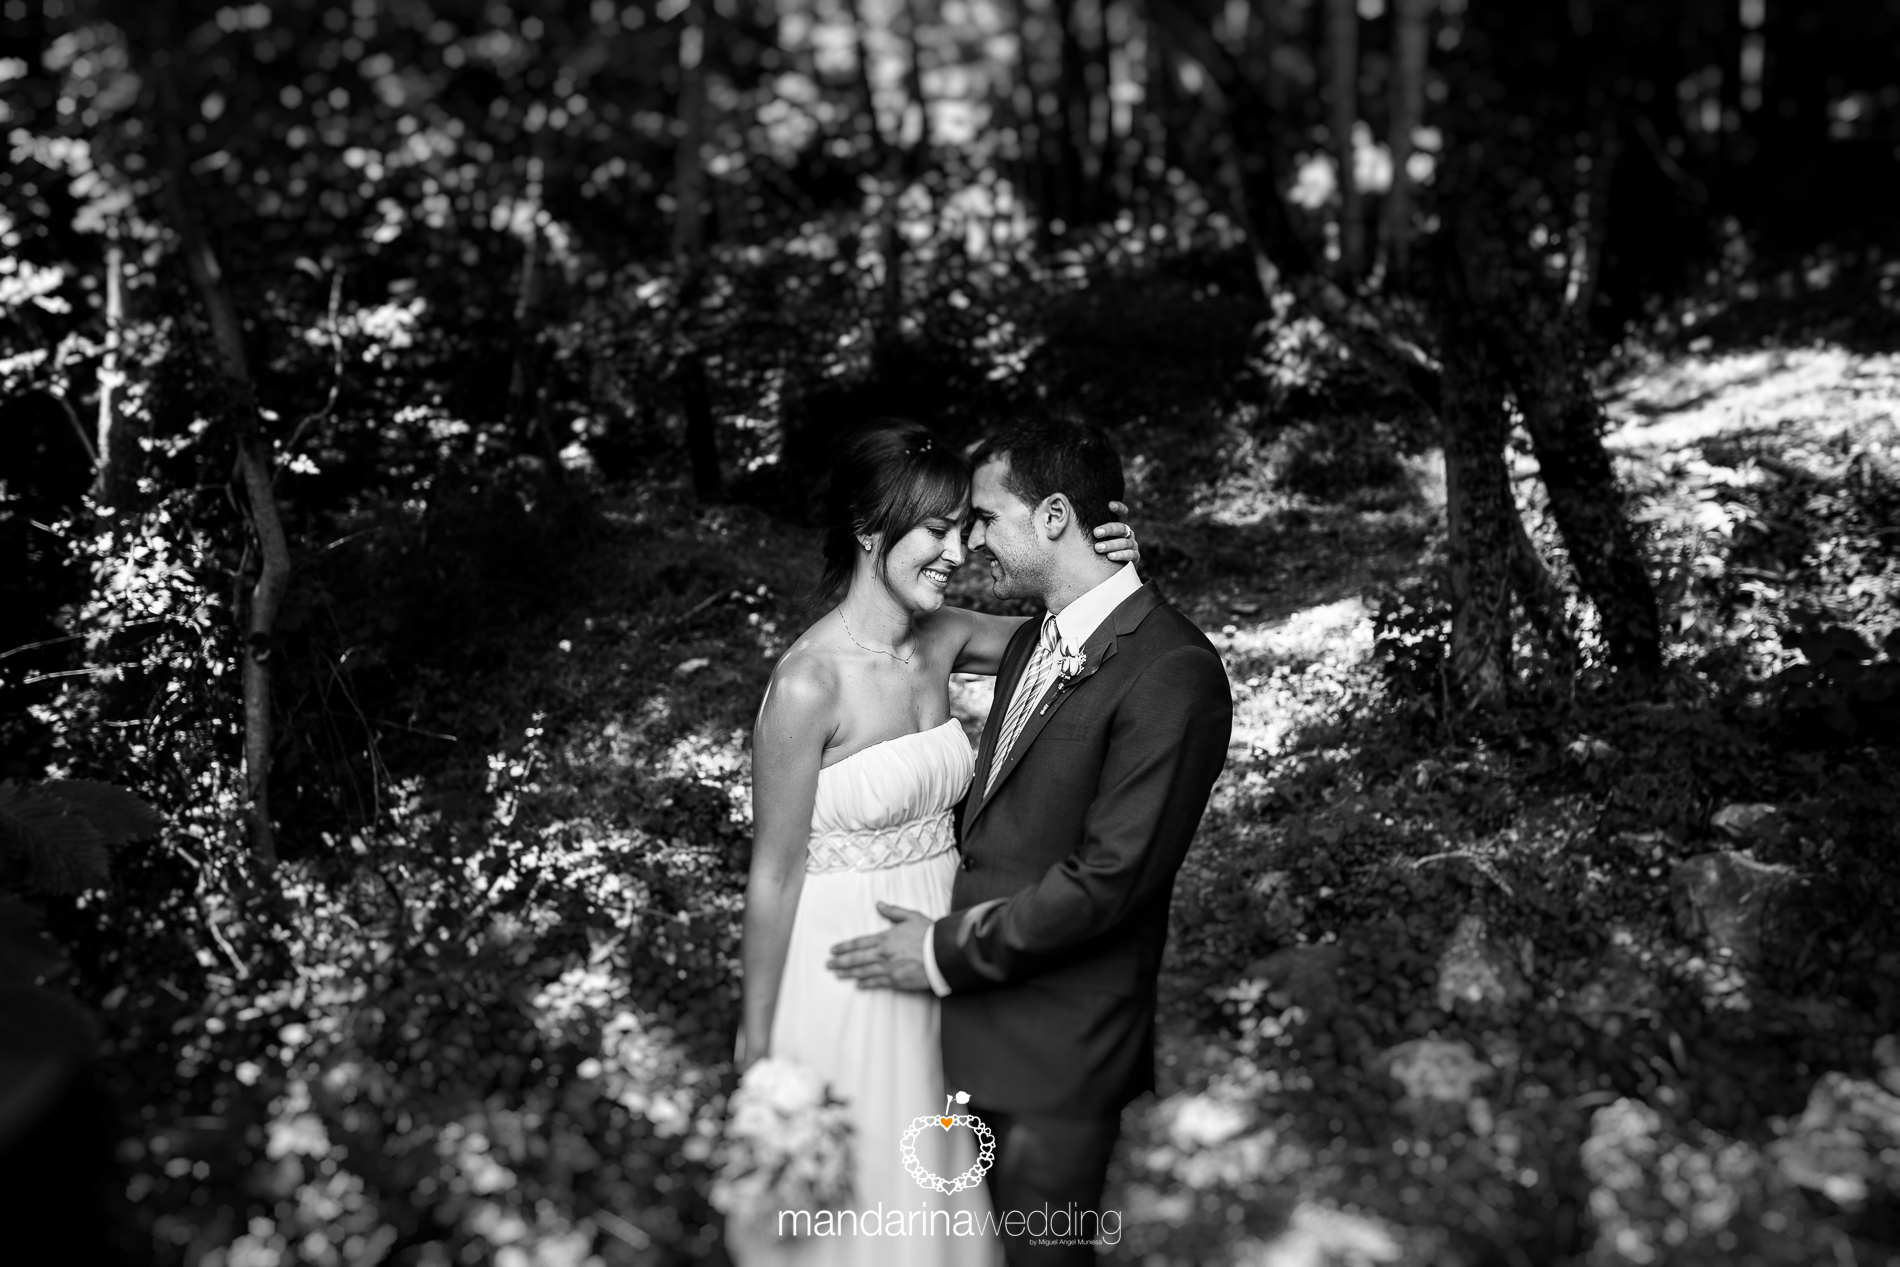 mandarina wedding_39